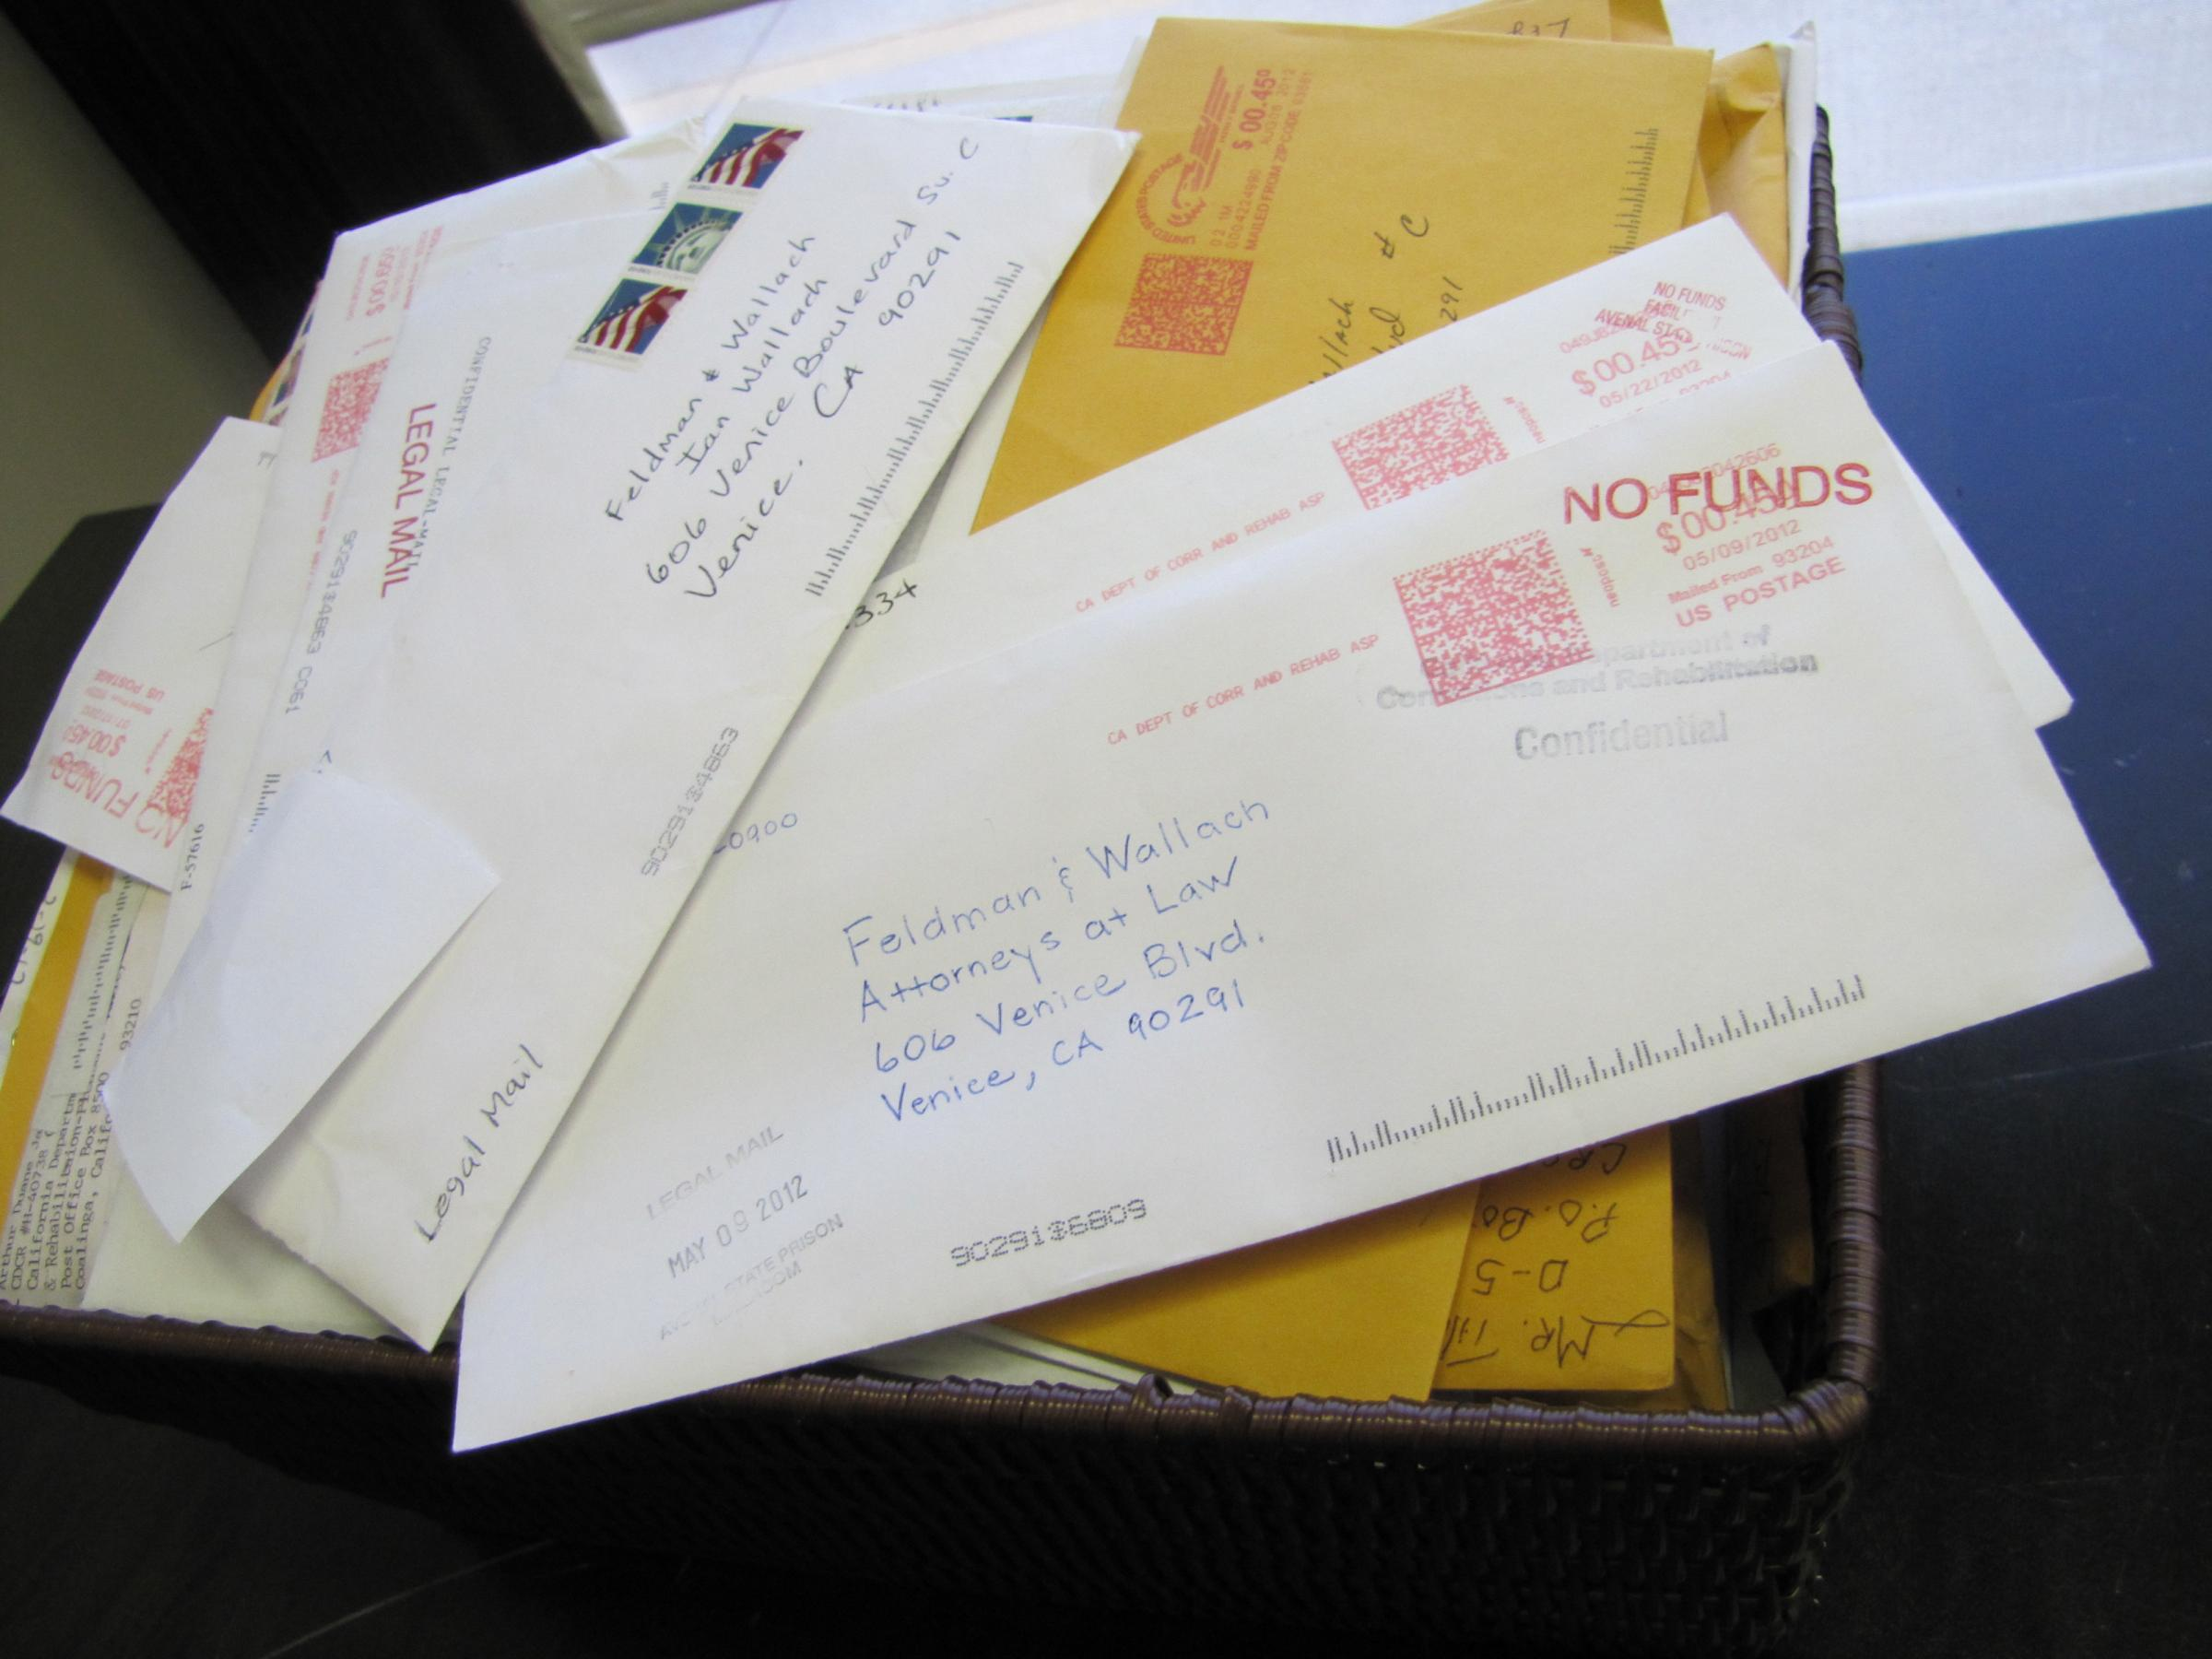 lawyers jason feldman and ian wallach have received hundreds of letters e mails and voice mails from inmates with valley fever seeking help